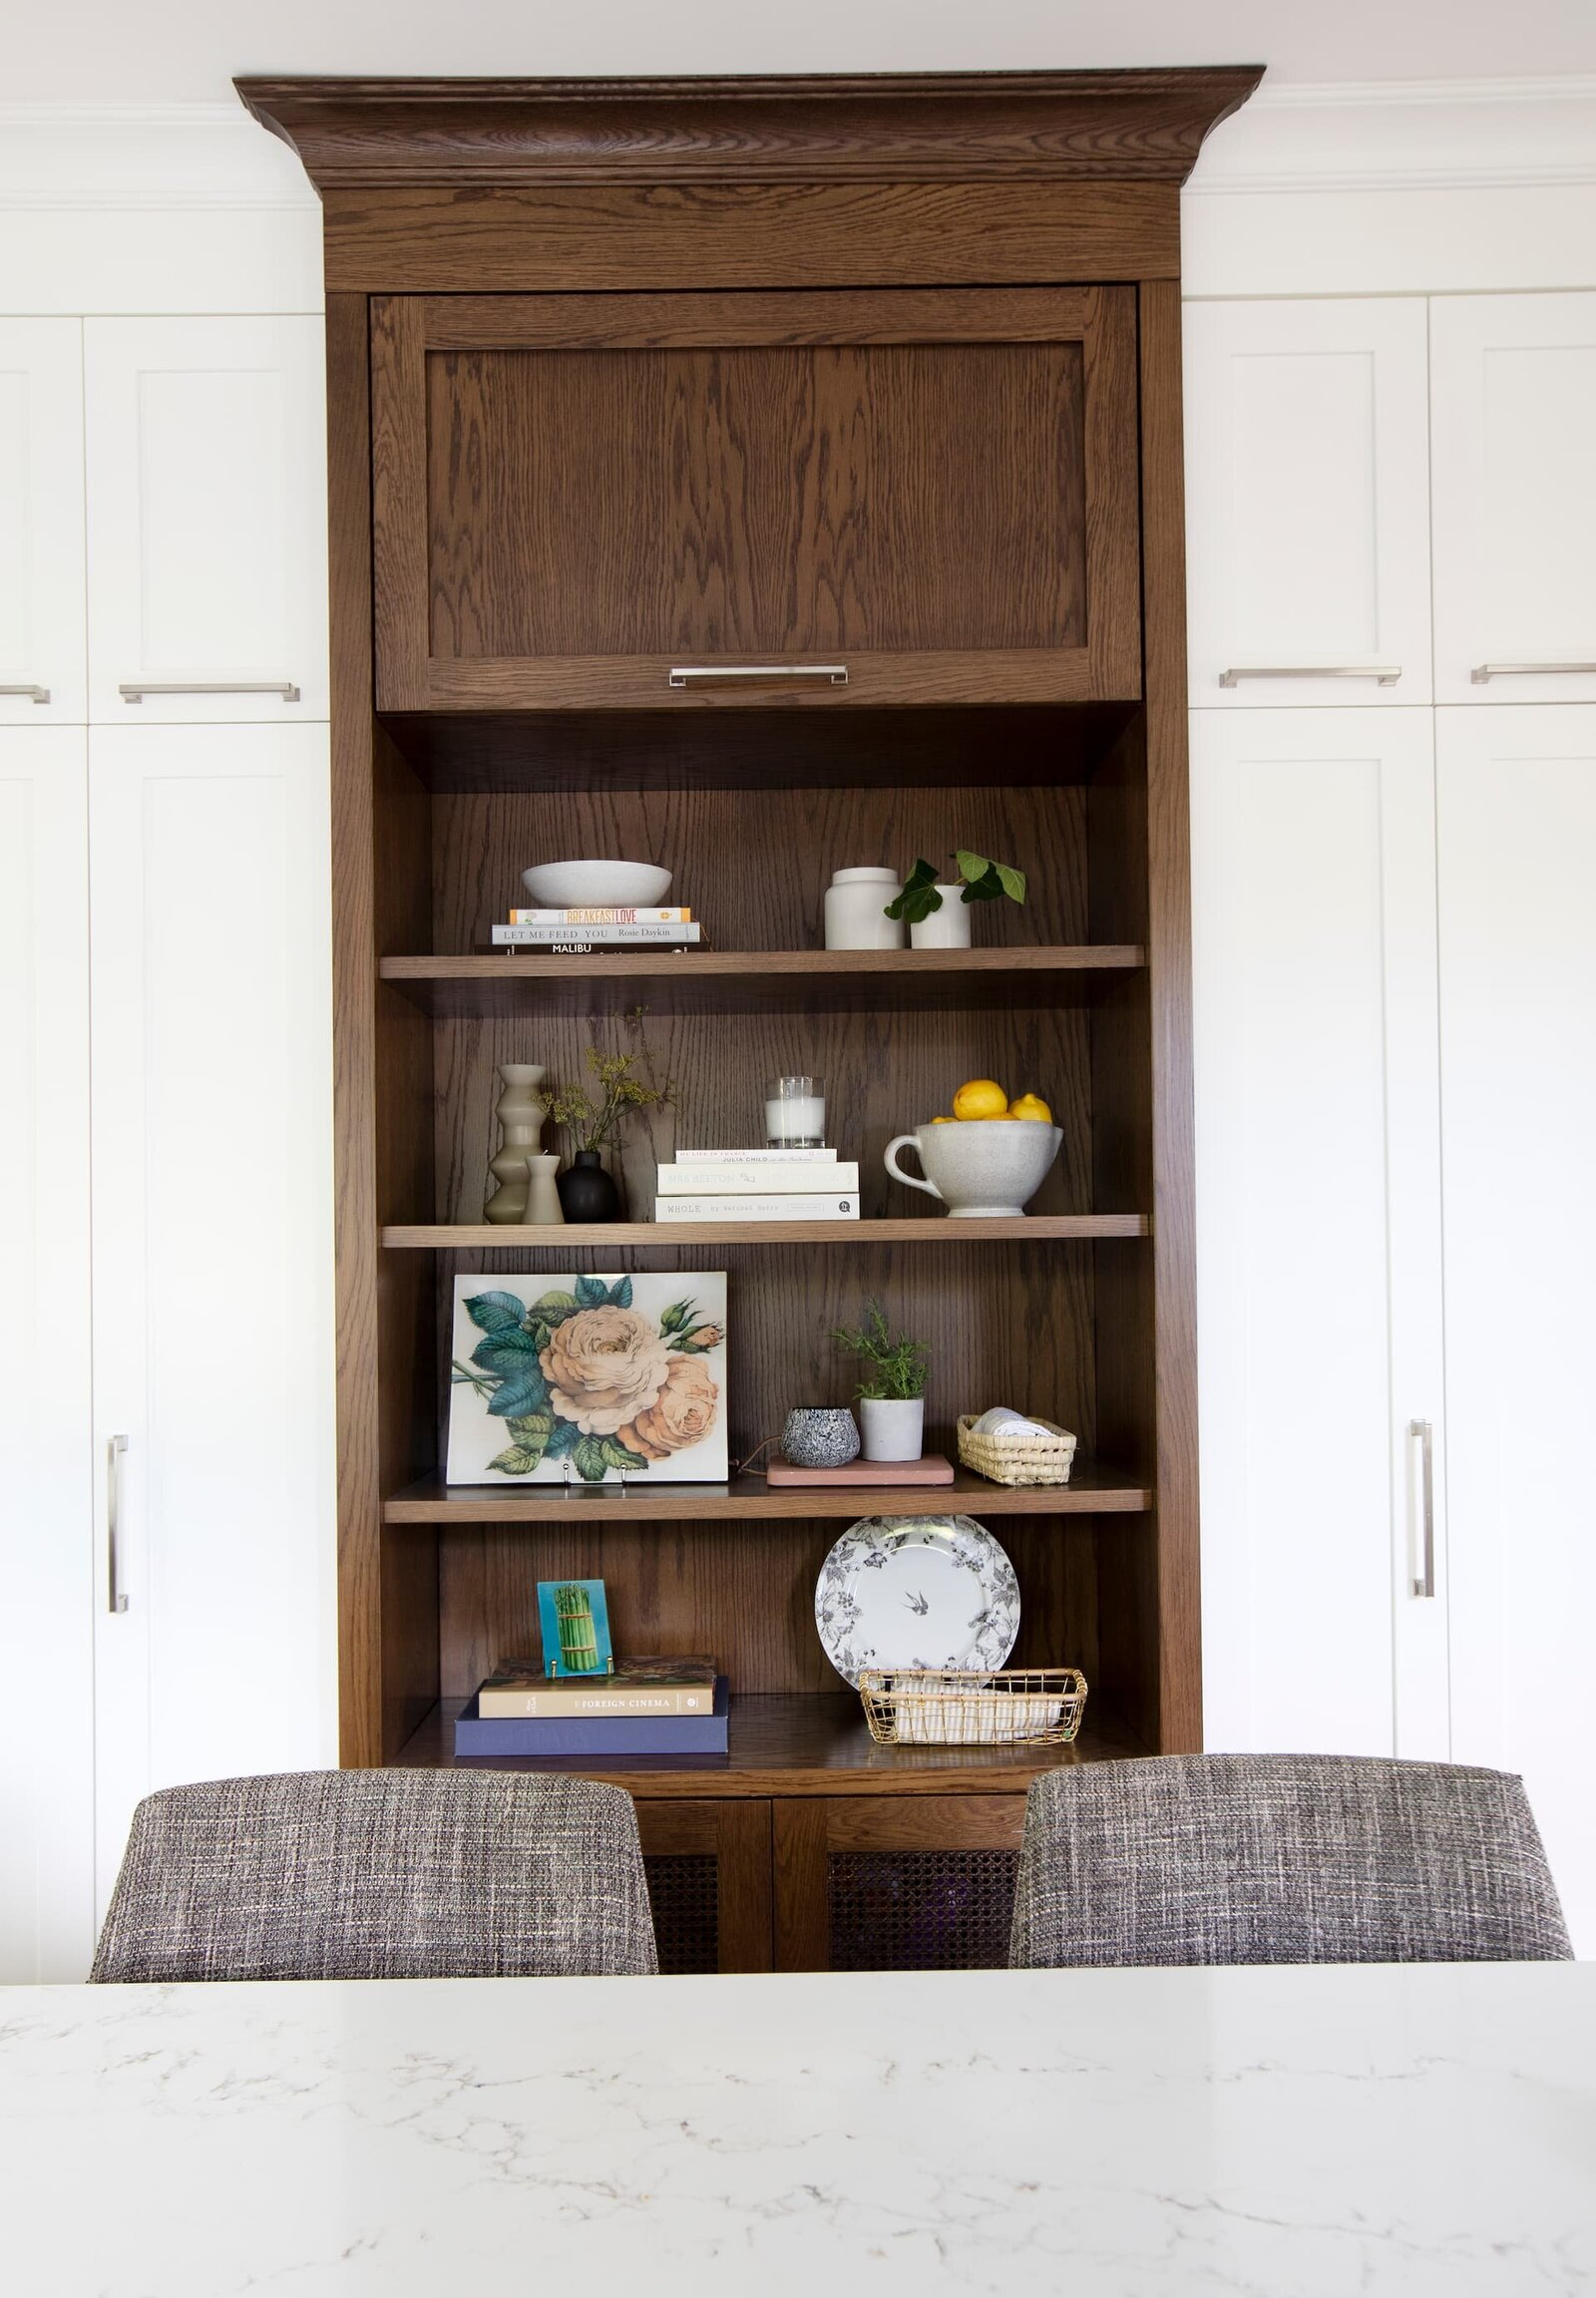 Granville Street l Kitchen l Storage Wall Cabinetry with Open Shelves